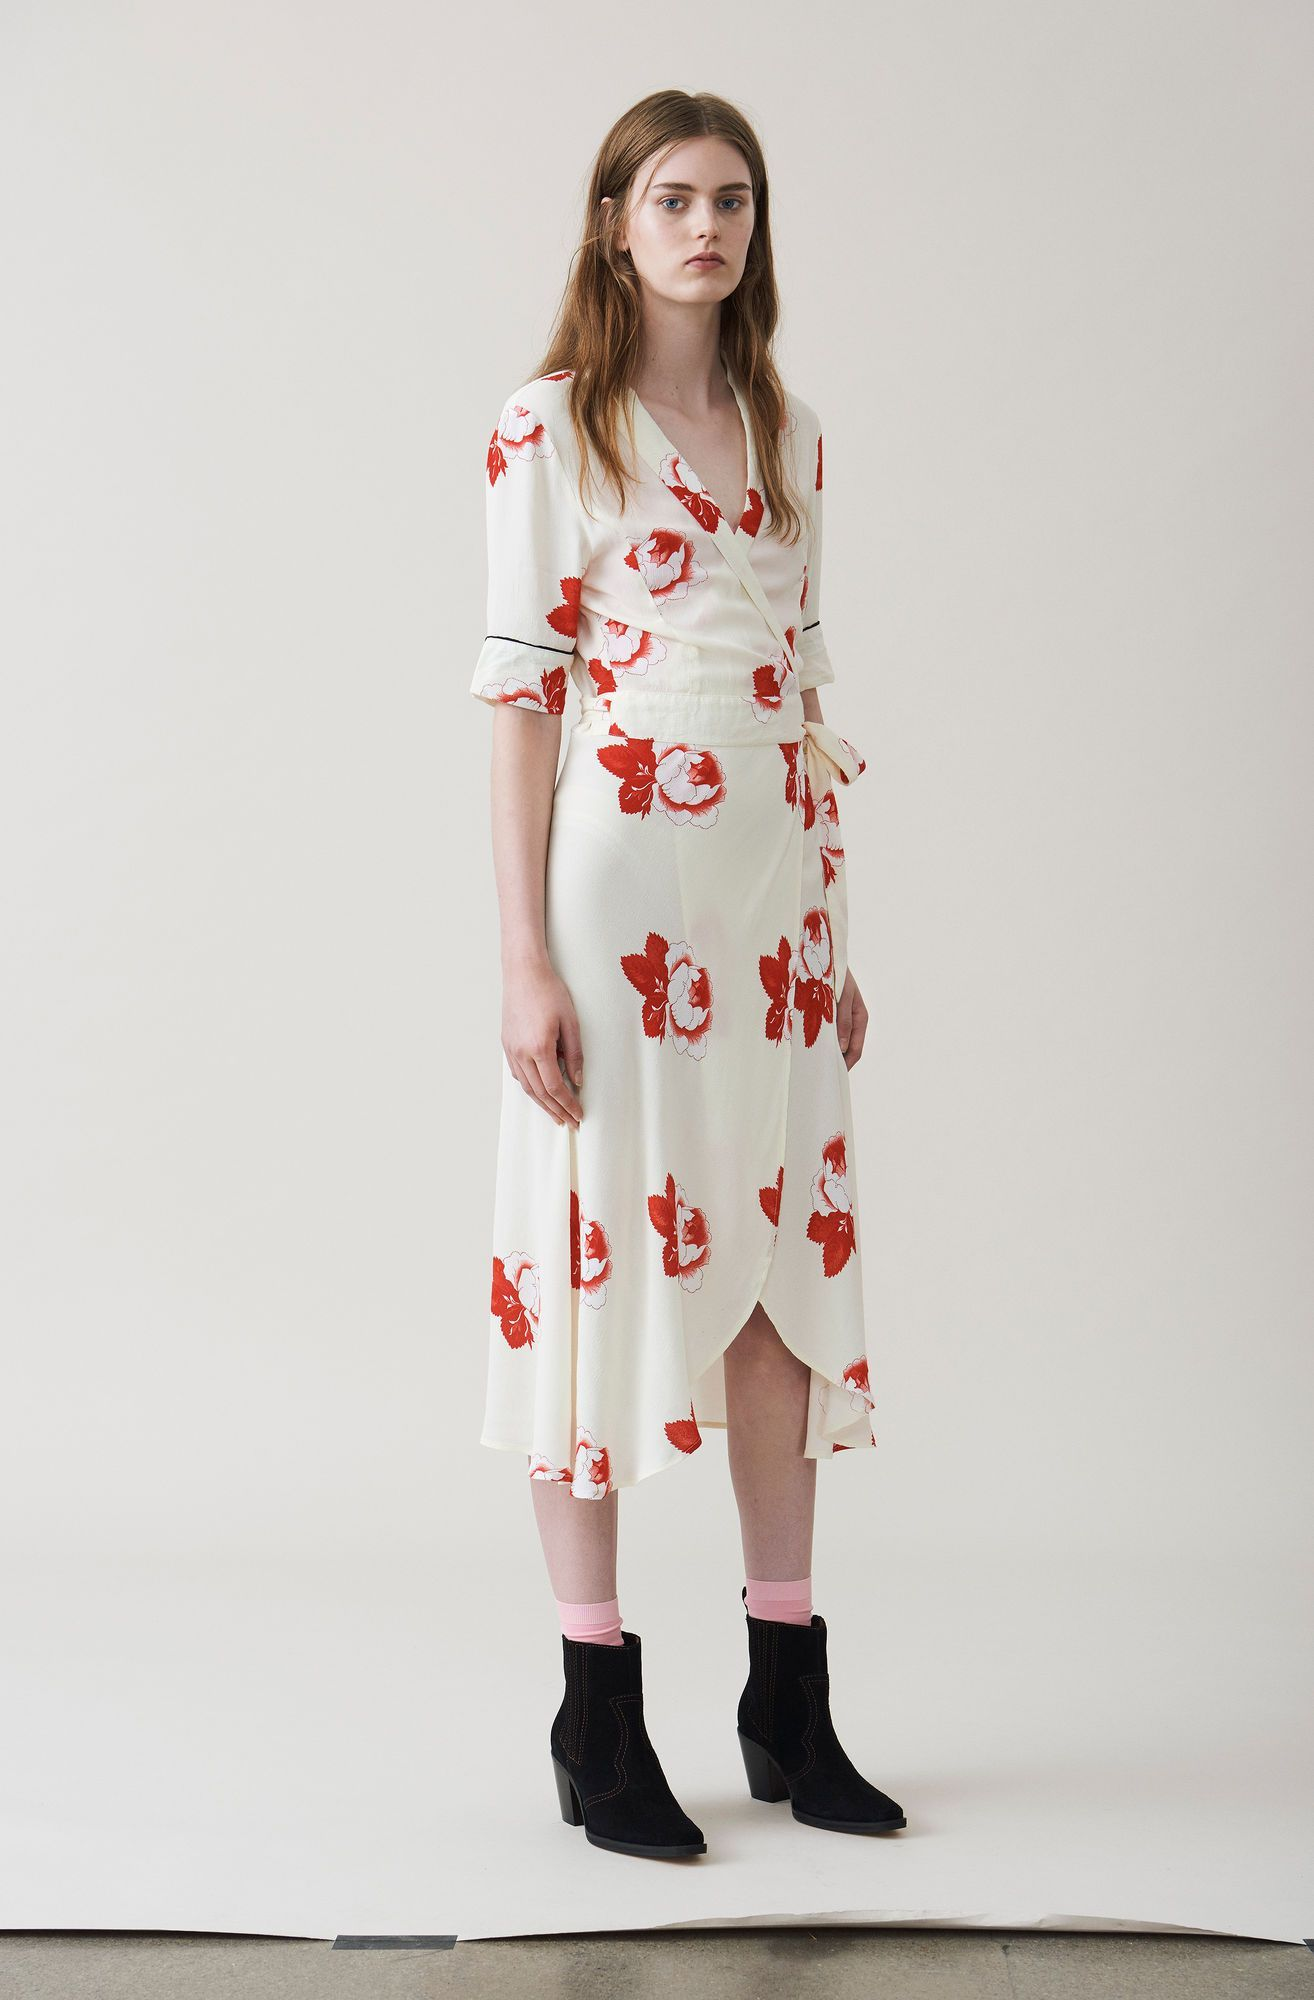 994d3e1fe66 Flattering wrap dress with a tea dress cut and roomy t-shirt sleeves  finished with a concealed waist belt and delicate frill details.